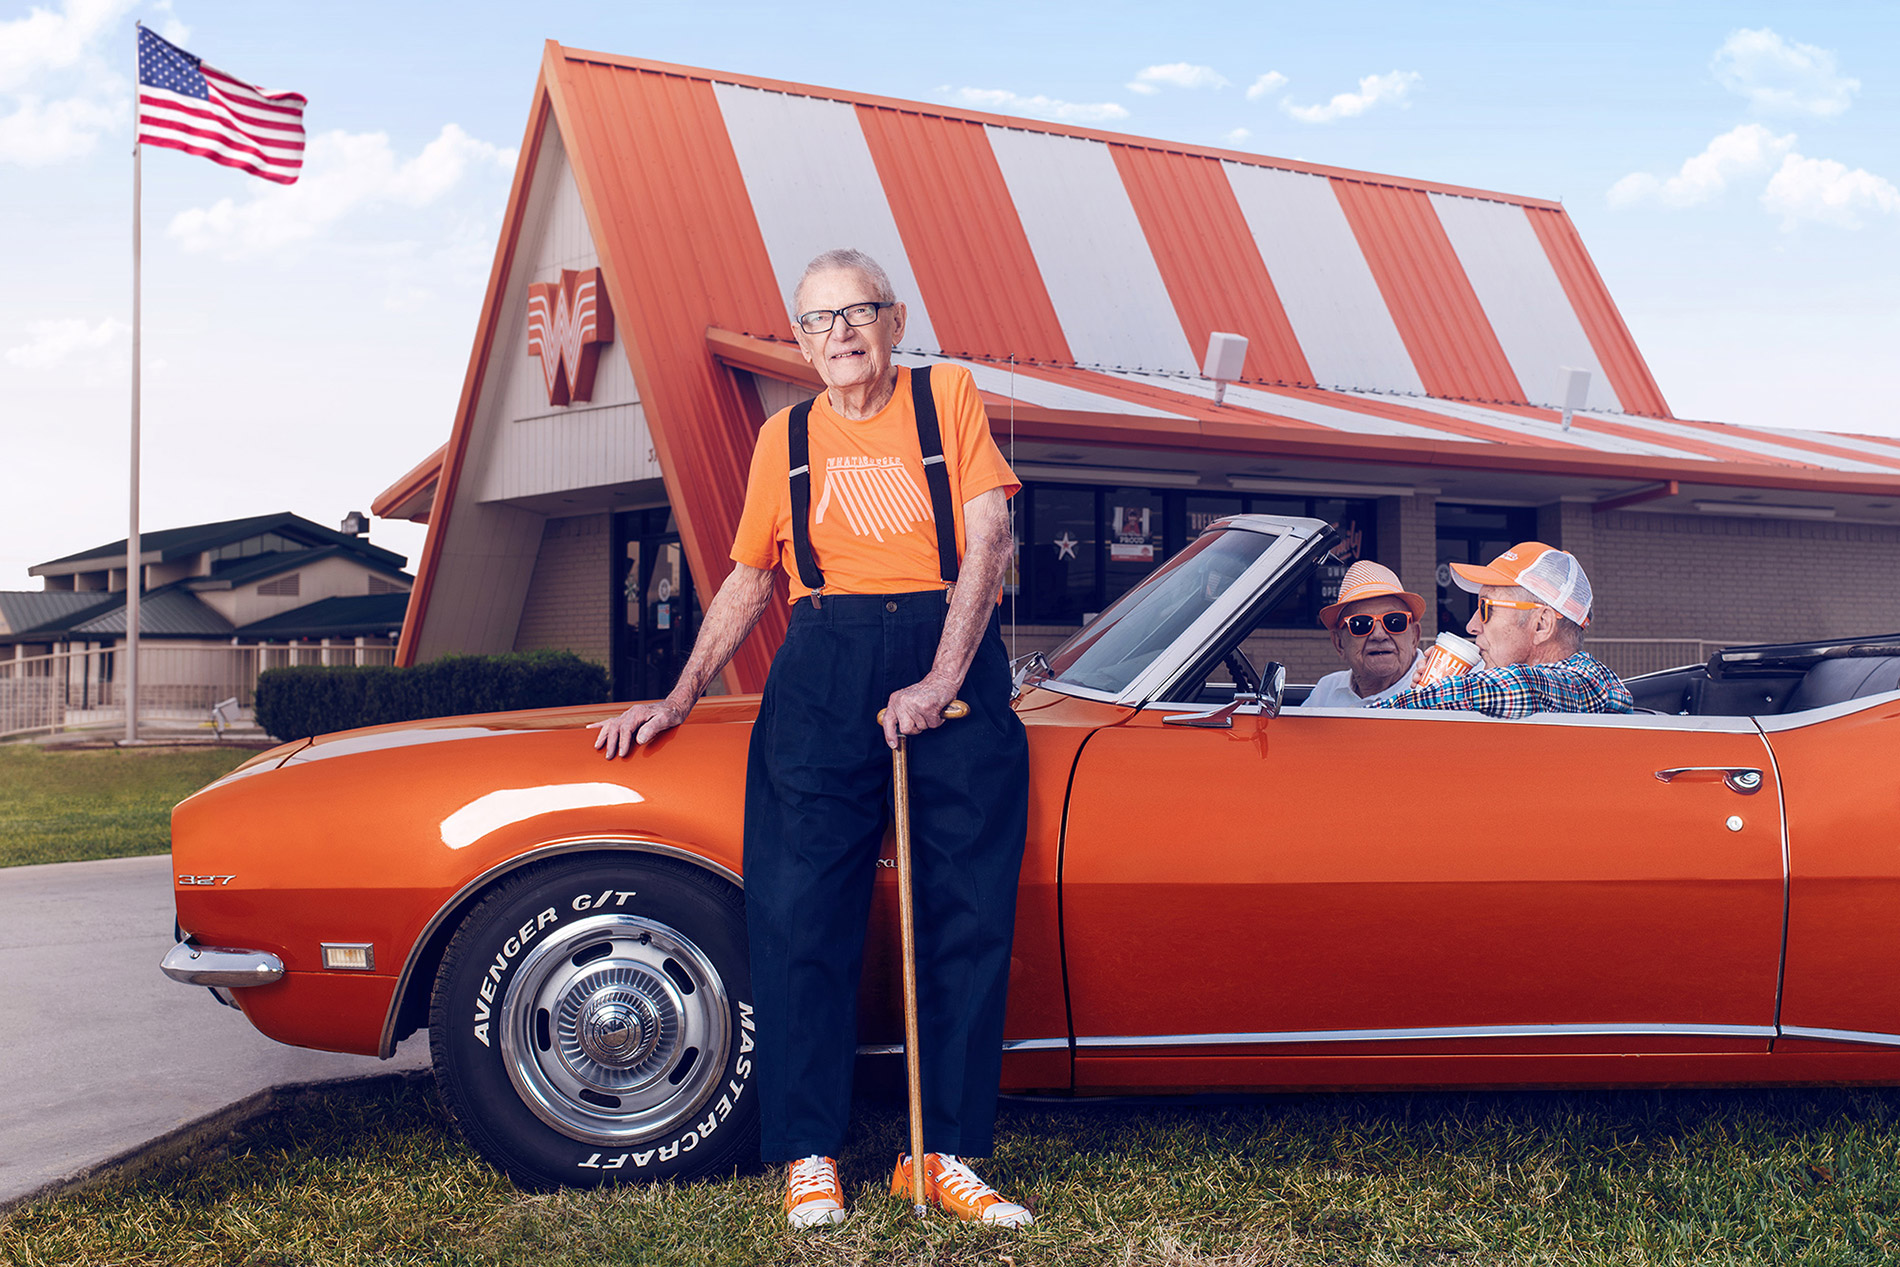 Arnold Moede photographed by conceptual advertising and editorial photographer Josh Huskin for Whataburger